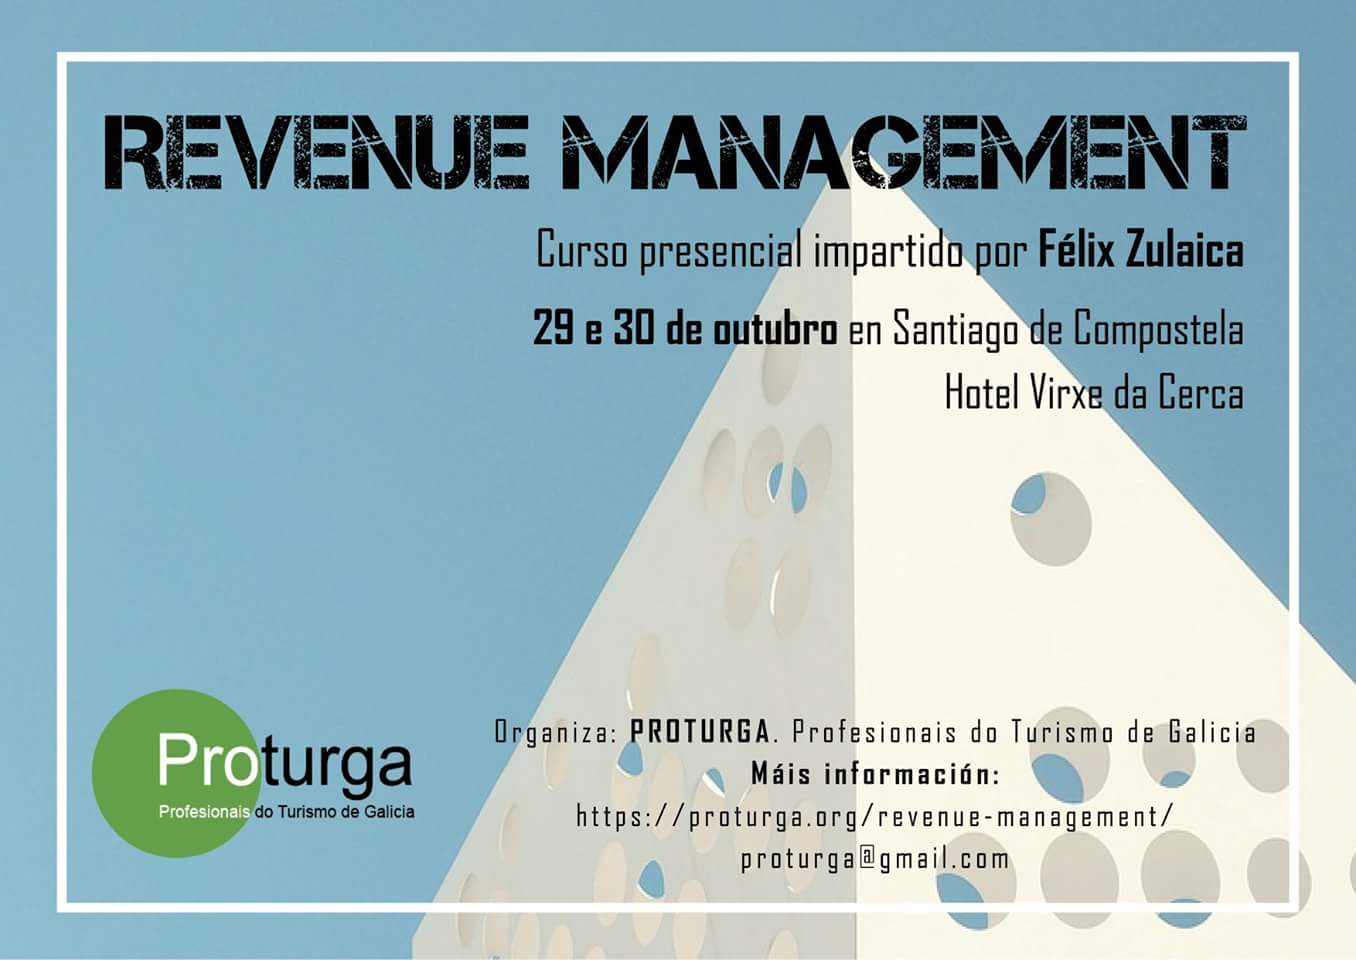 Proturga organizes two revenue-management and digital-marketing courses for professionals in the tourism sector